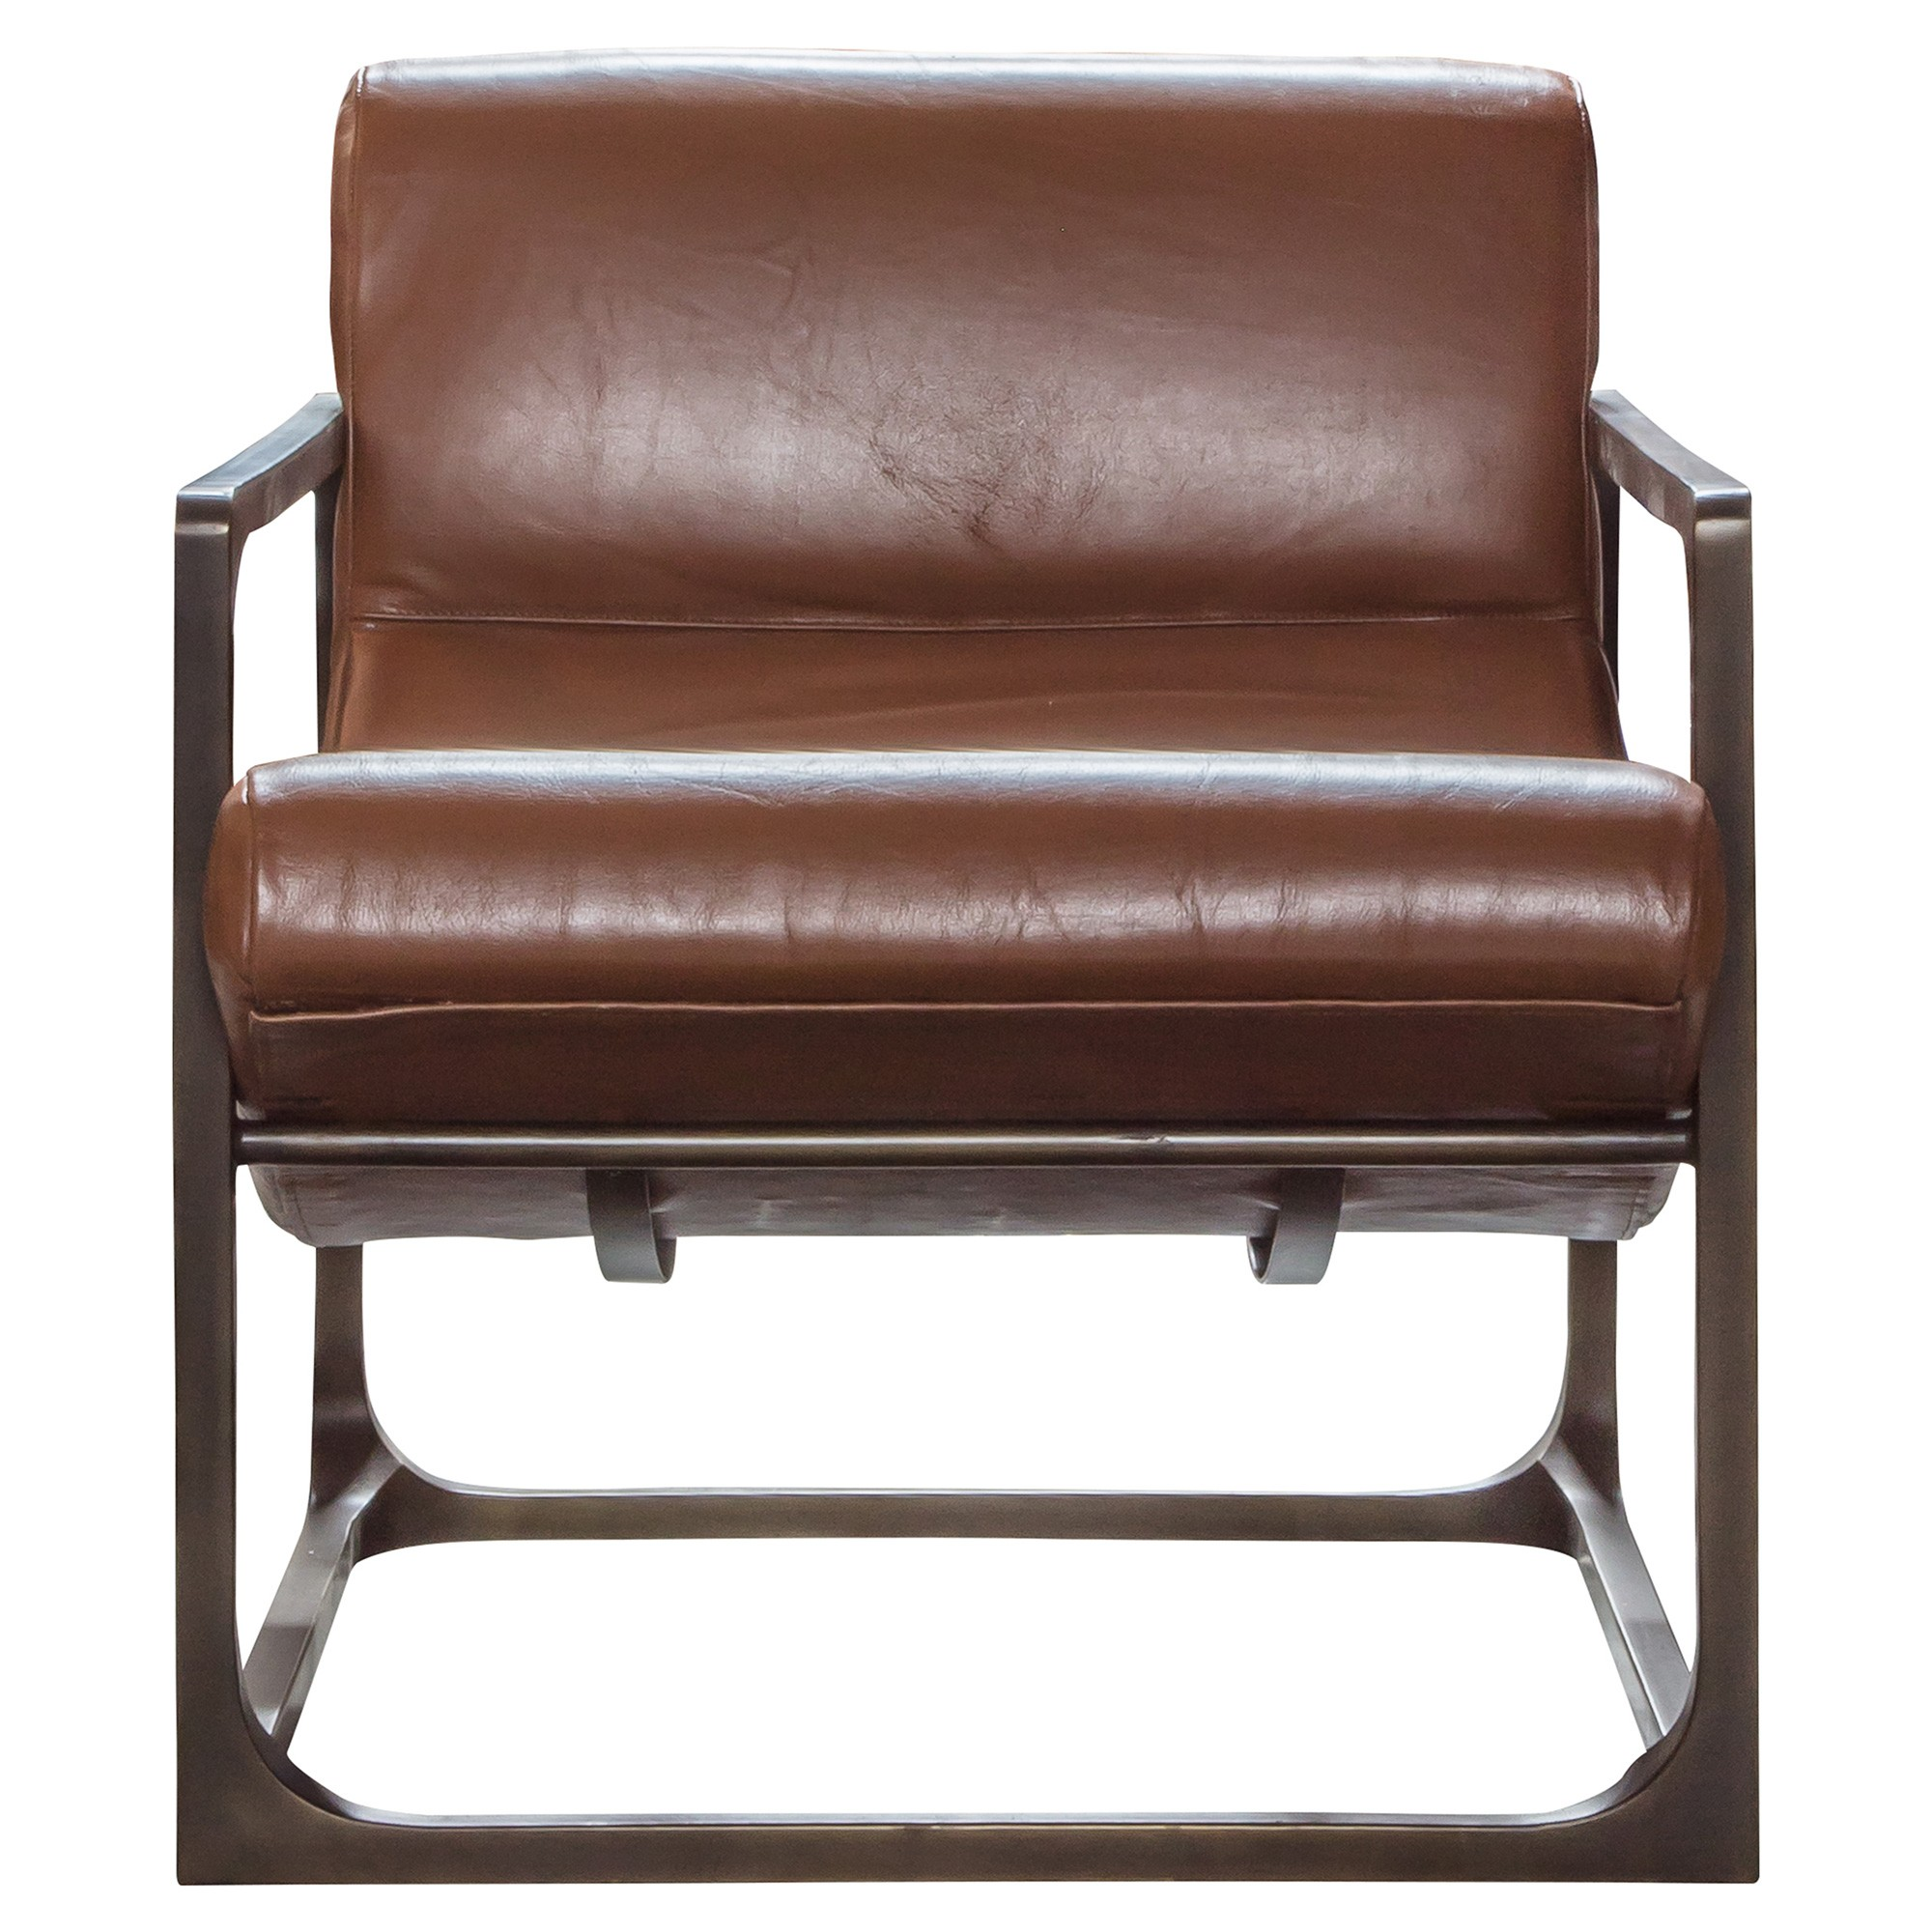 Boda Leather & Metal Lounge Armchair, Brown